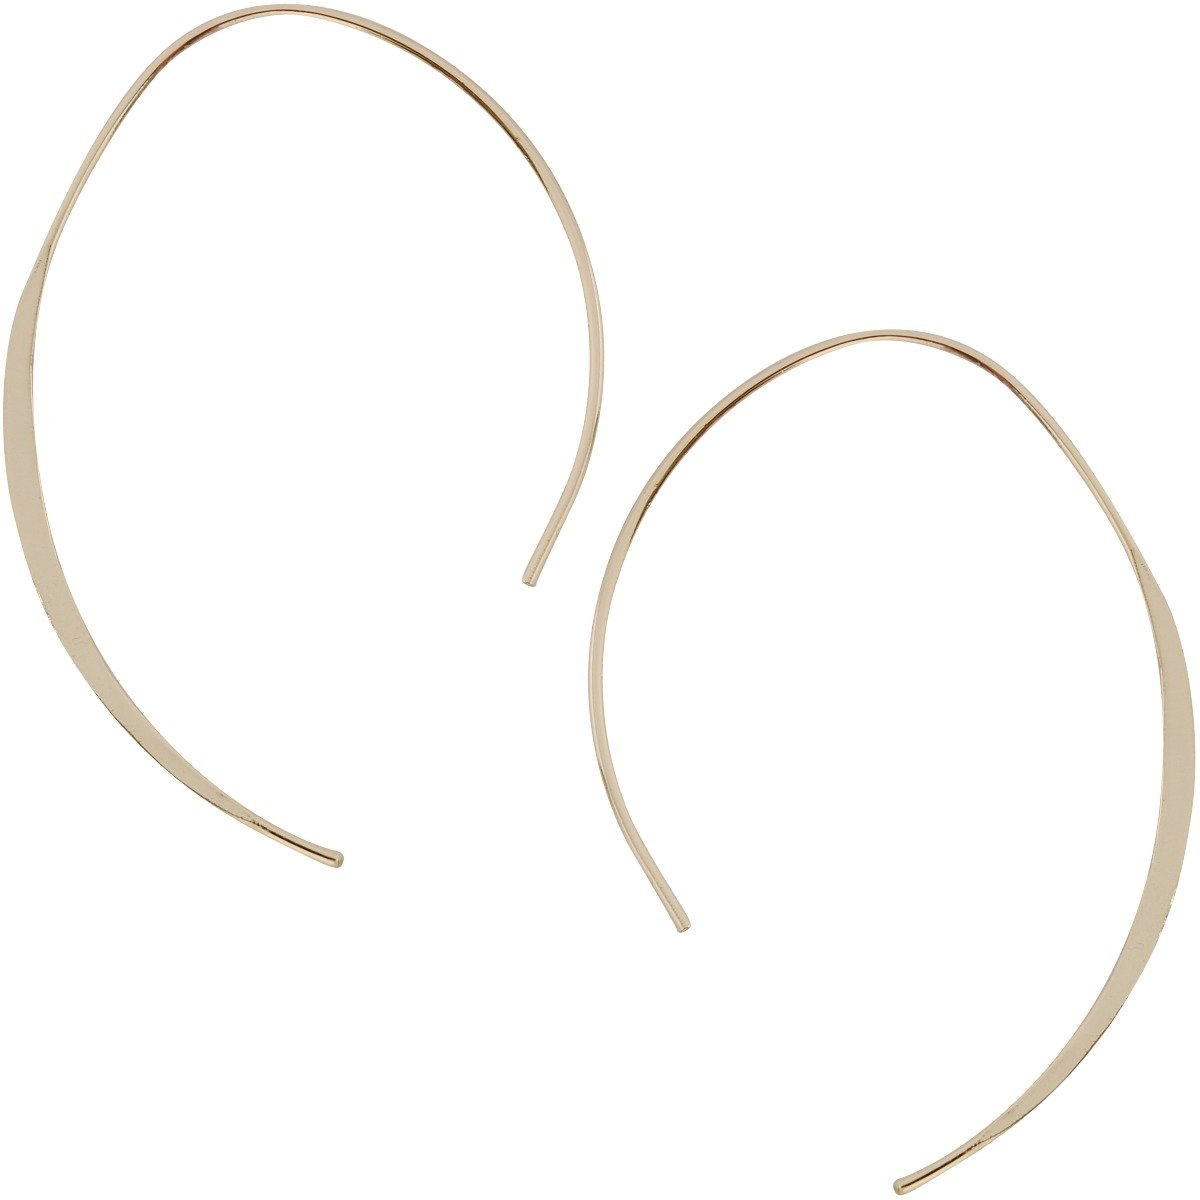 Humble Chic Upside Down Hoops - Hypoallergenic Lightweight Open Wire Needle Drop Dangle Threader Earrings, 24K Yellow, Gold-Electroplated